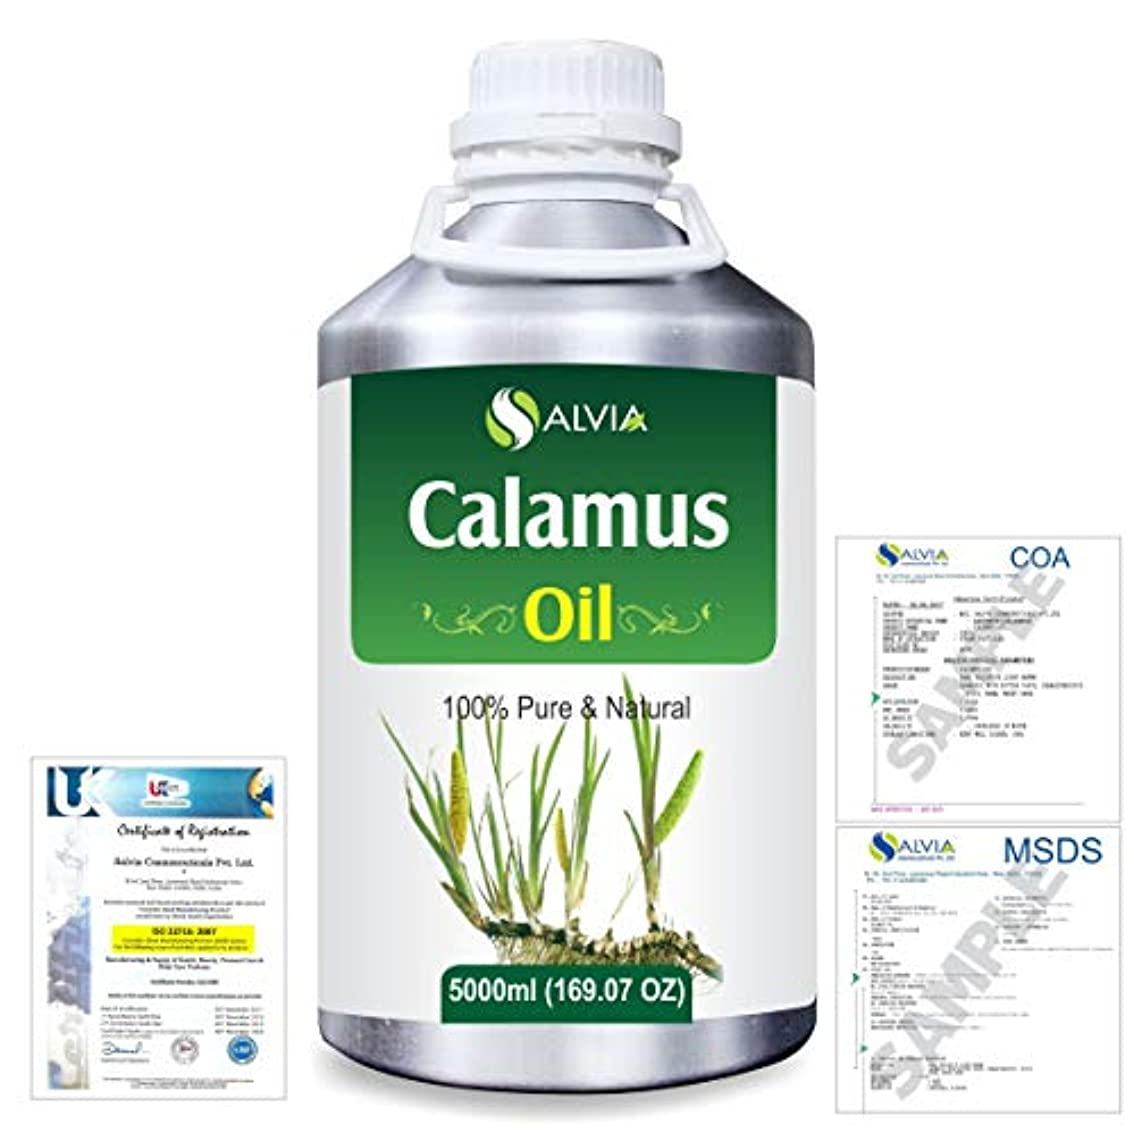 プロフィール脚本家作曲するCalamus (Acorus Calamus) 100% Pure Natural Essential Oil 5000ml/169 fl.oz.